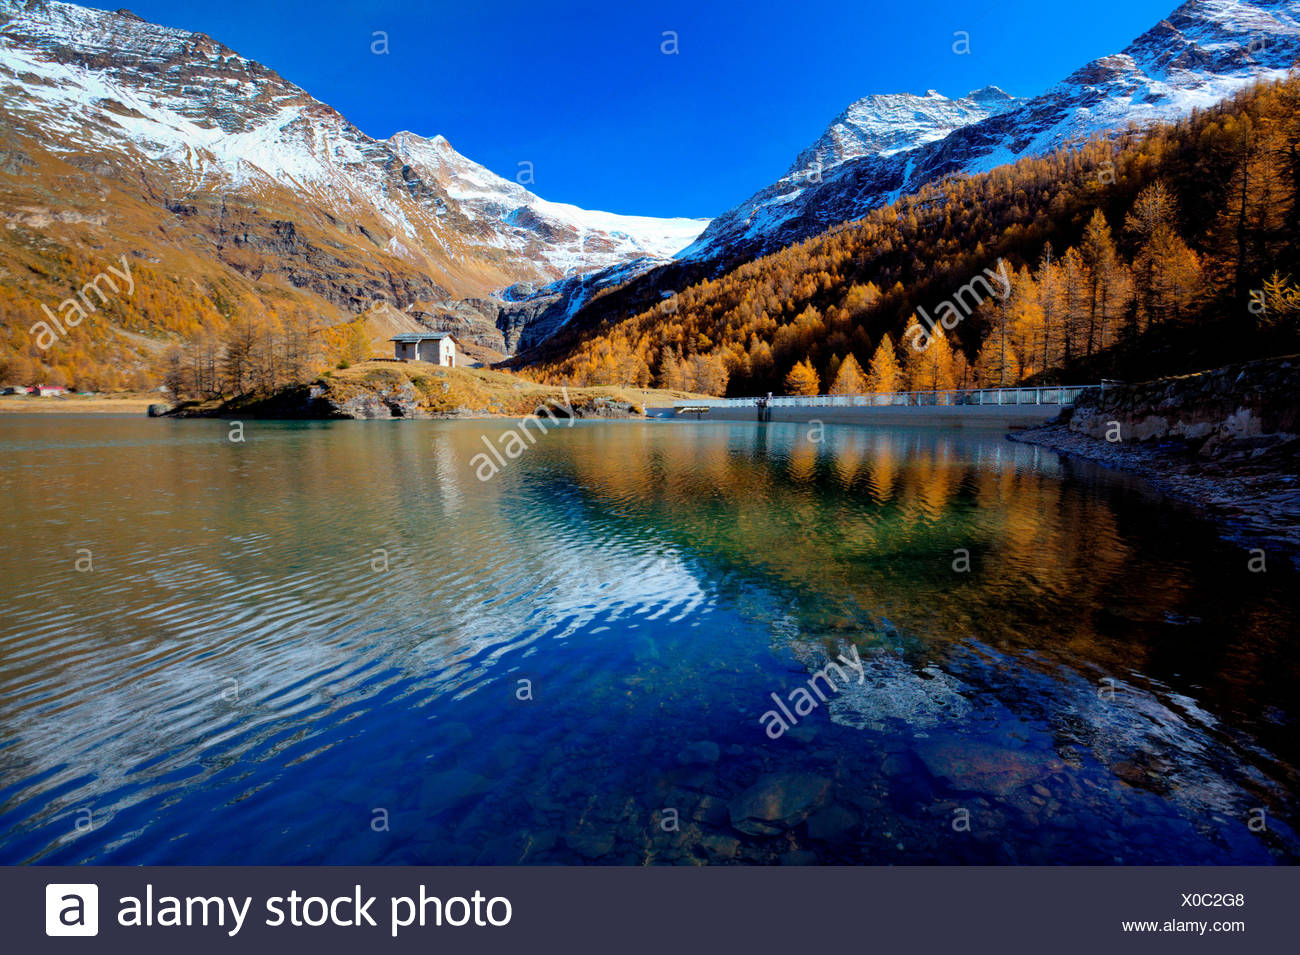 Reflections in the blue lake of Alp Grum in autumn. In the background the snowy peaks and glacier Palù. Poschiavo Valley Canton of Graubünden Switzerland Europe - Stock Image